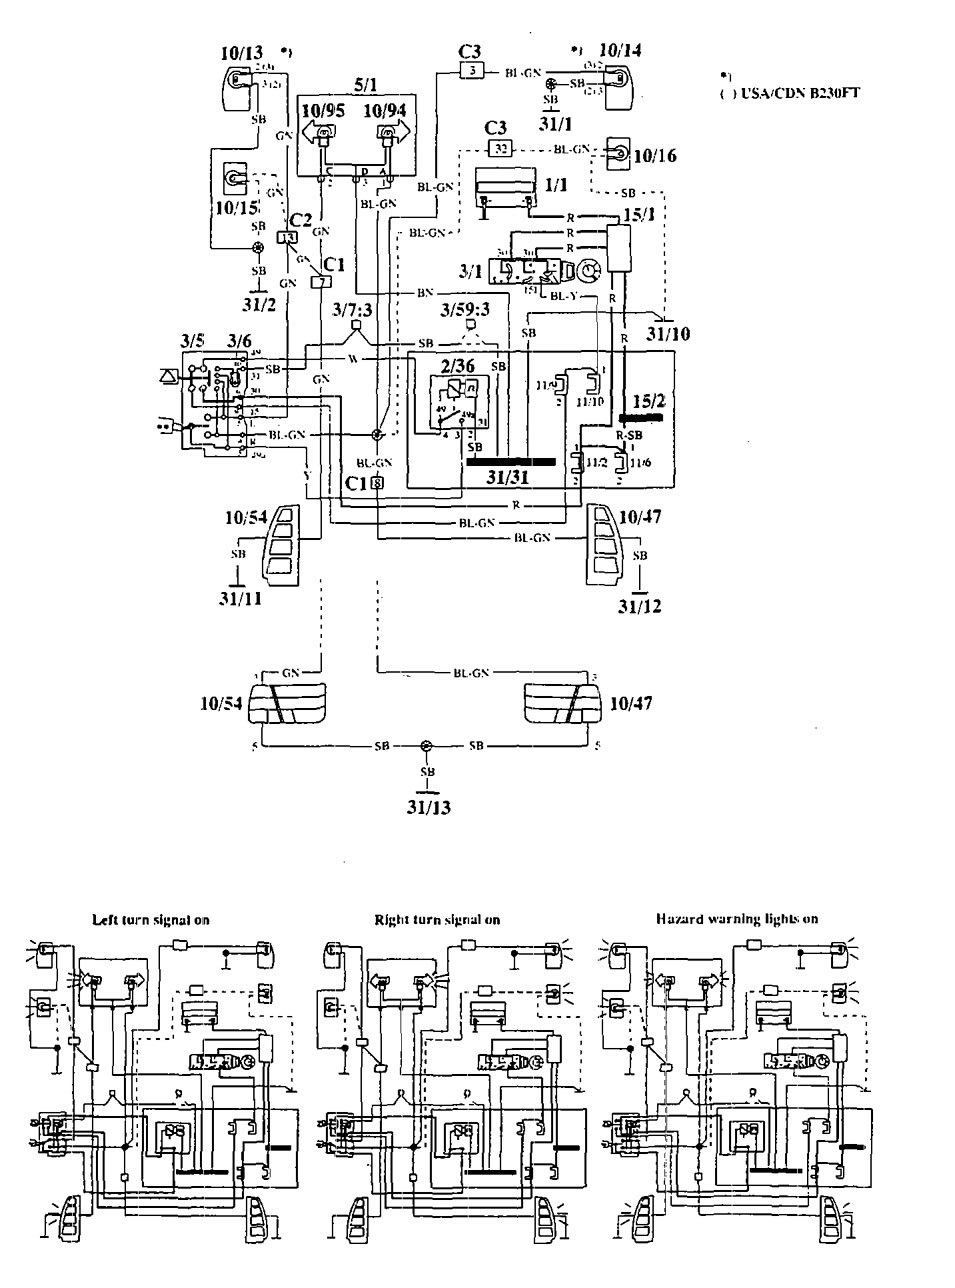 hight resolution of volvo 940 1994 wiring diagrams turn signal lamp 1994 volvo 940 fuse diagram 1994 volvo 940 fuse box